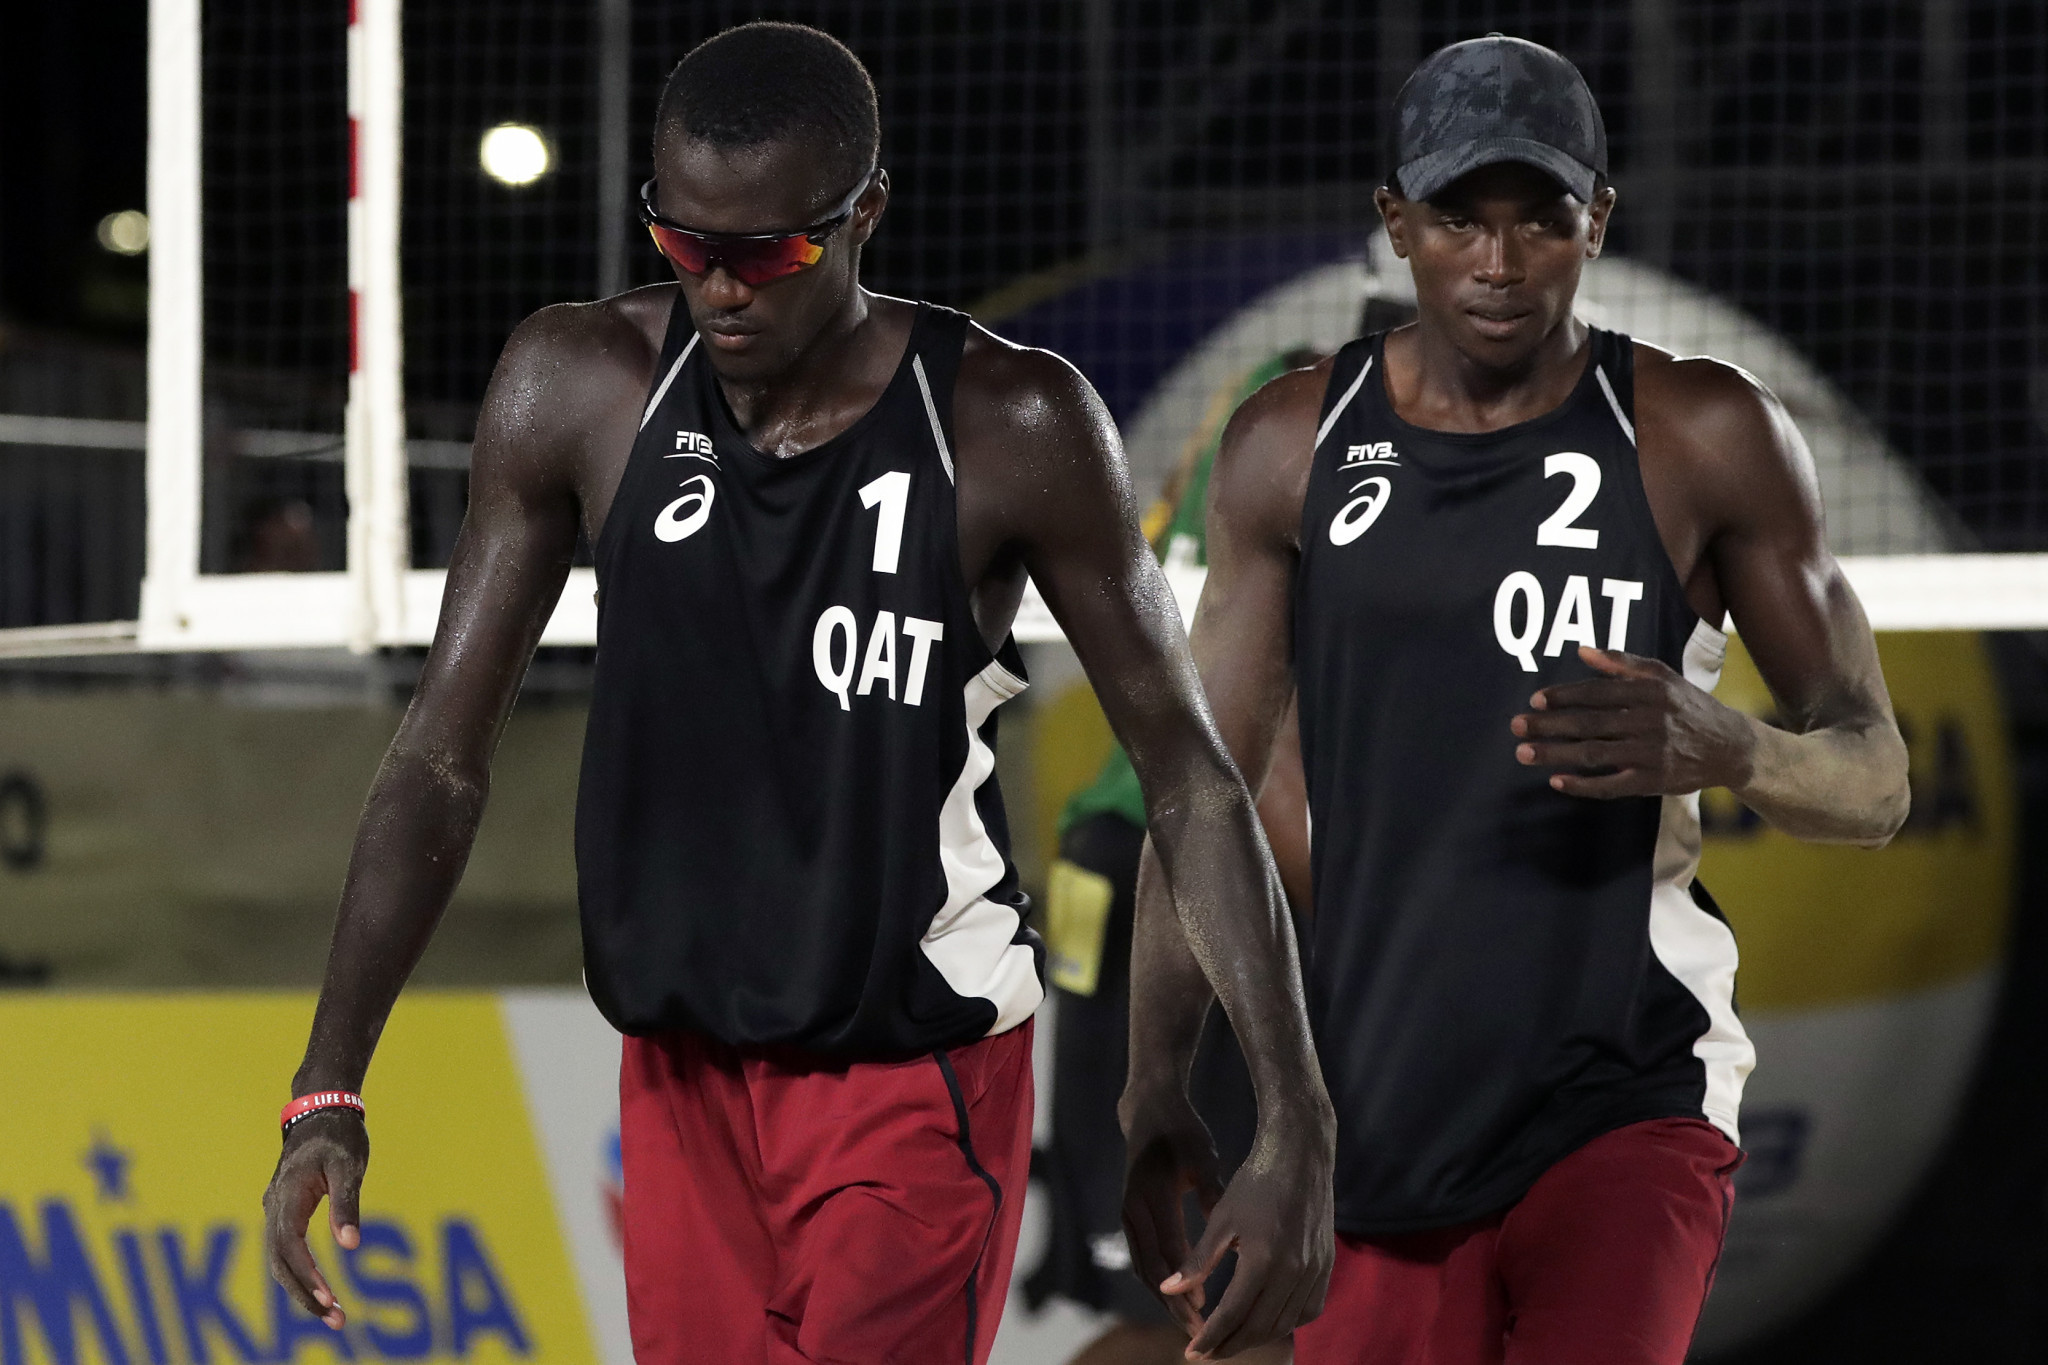 Home pairing Cherif and Ahmed start well in Doha Beach Volleyball Cup